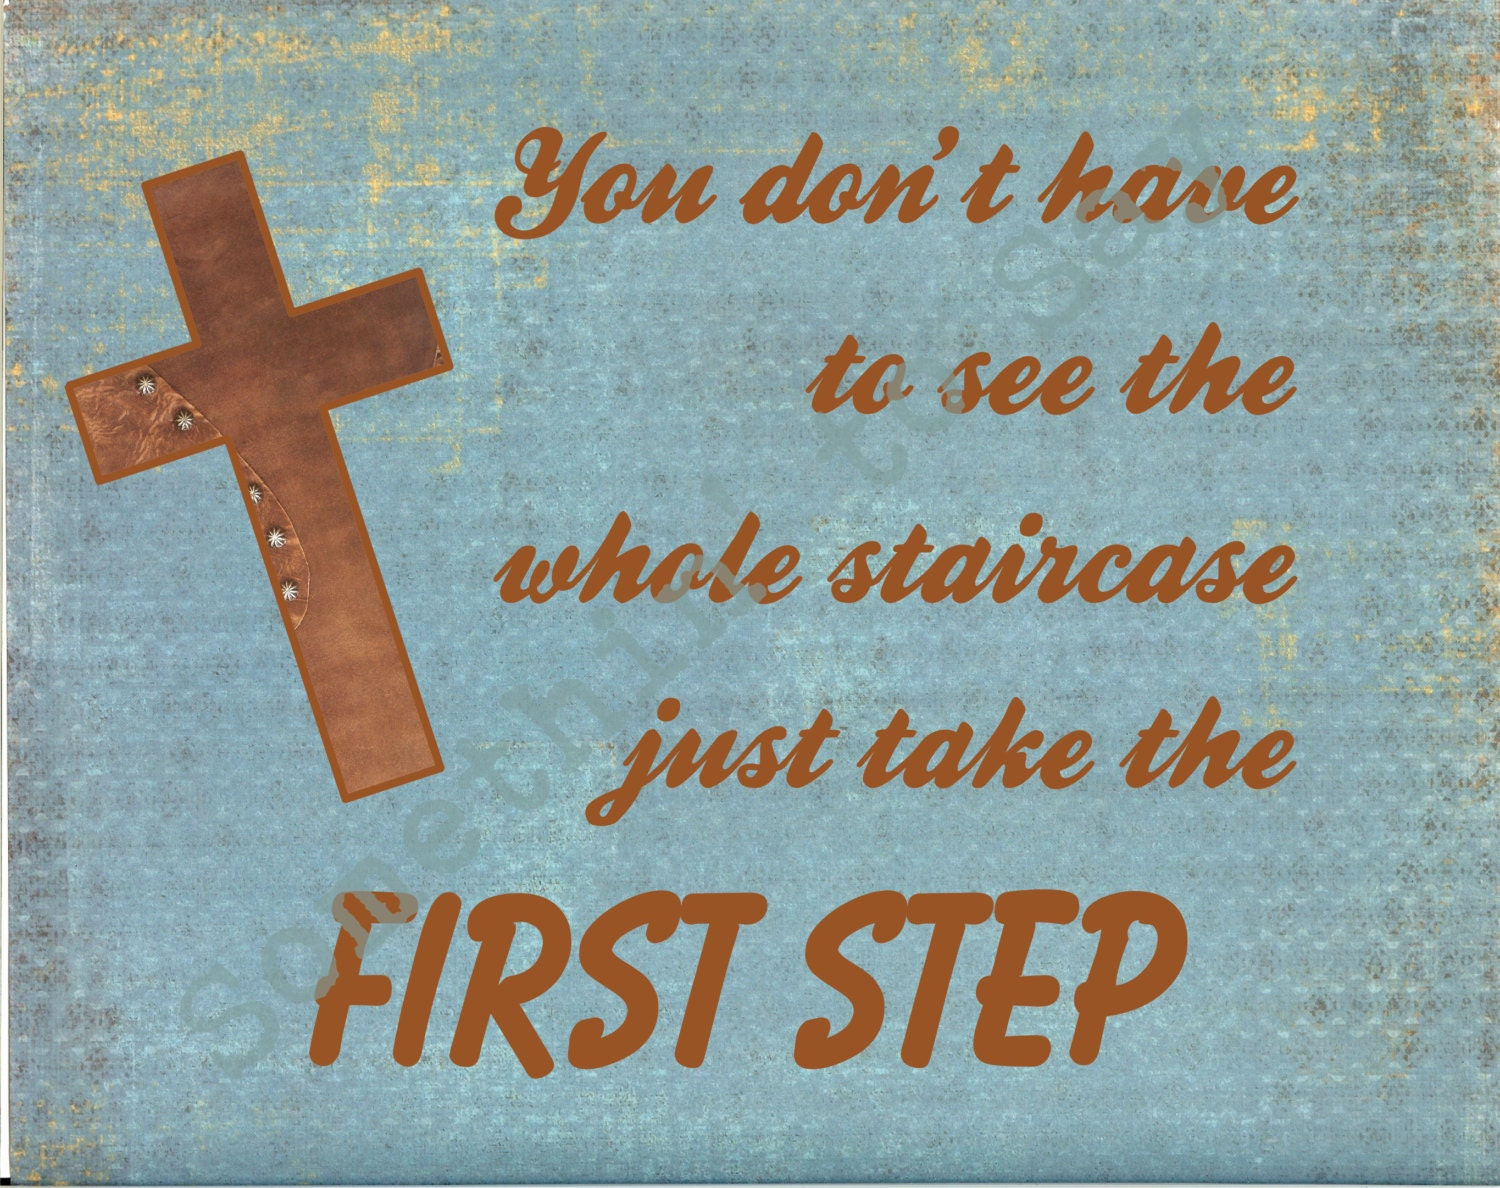 You Don't Have To See The Whole Staircase...First Step